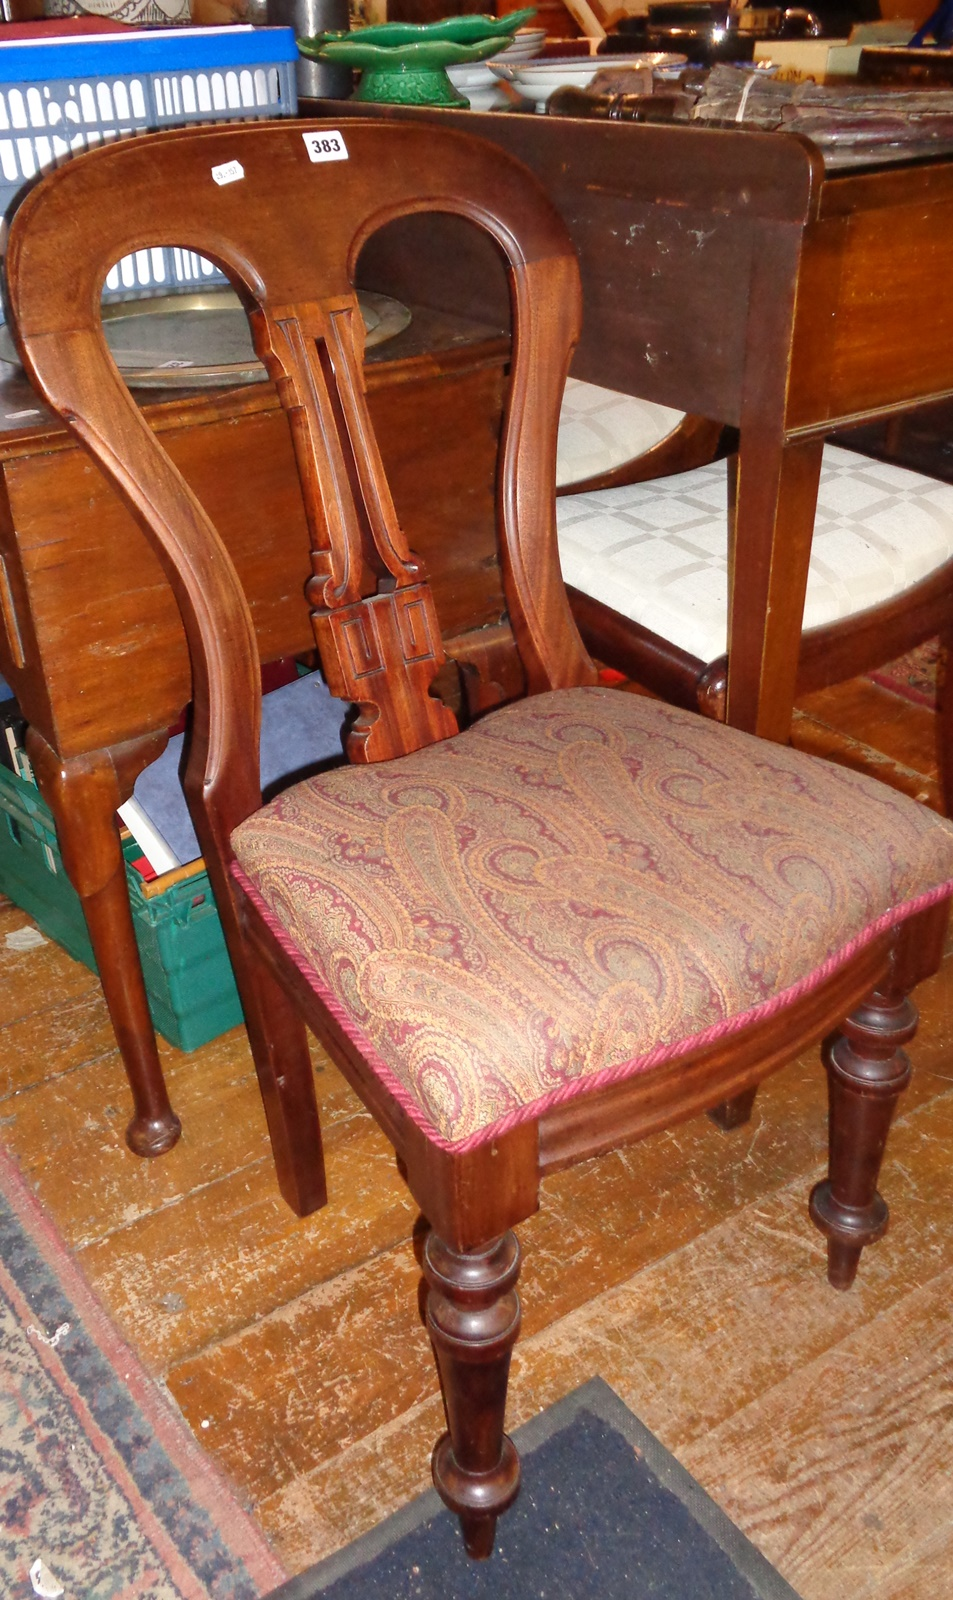 Lot 383 - Mahogany spoon-back dining chair with paisley seat